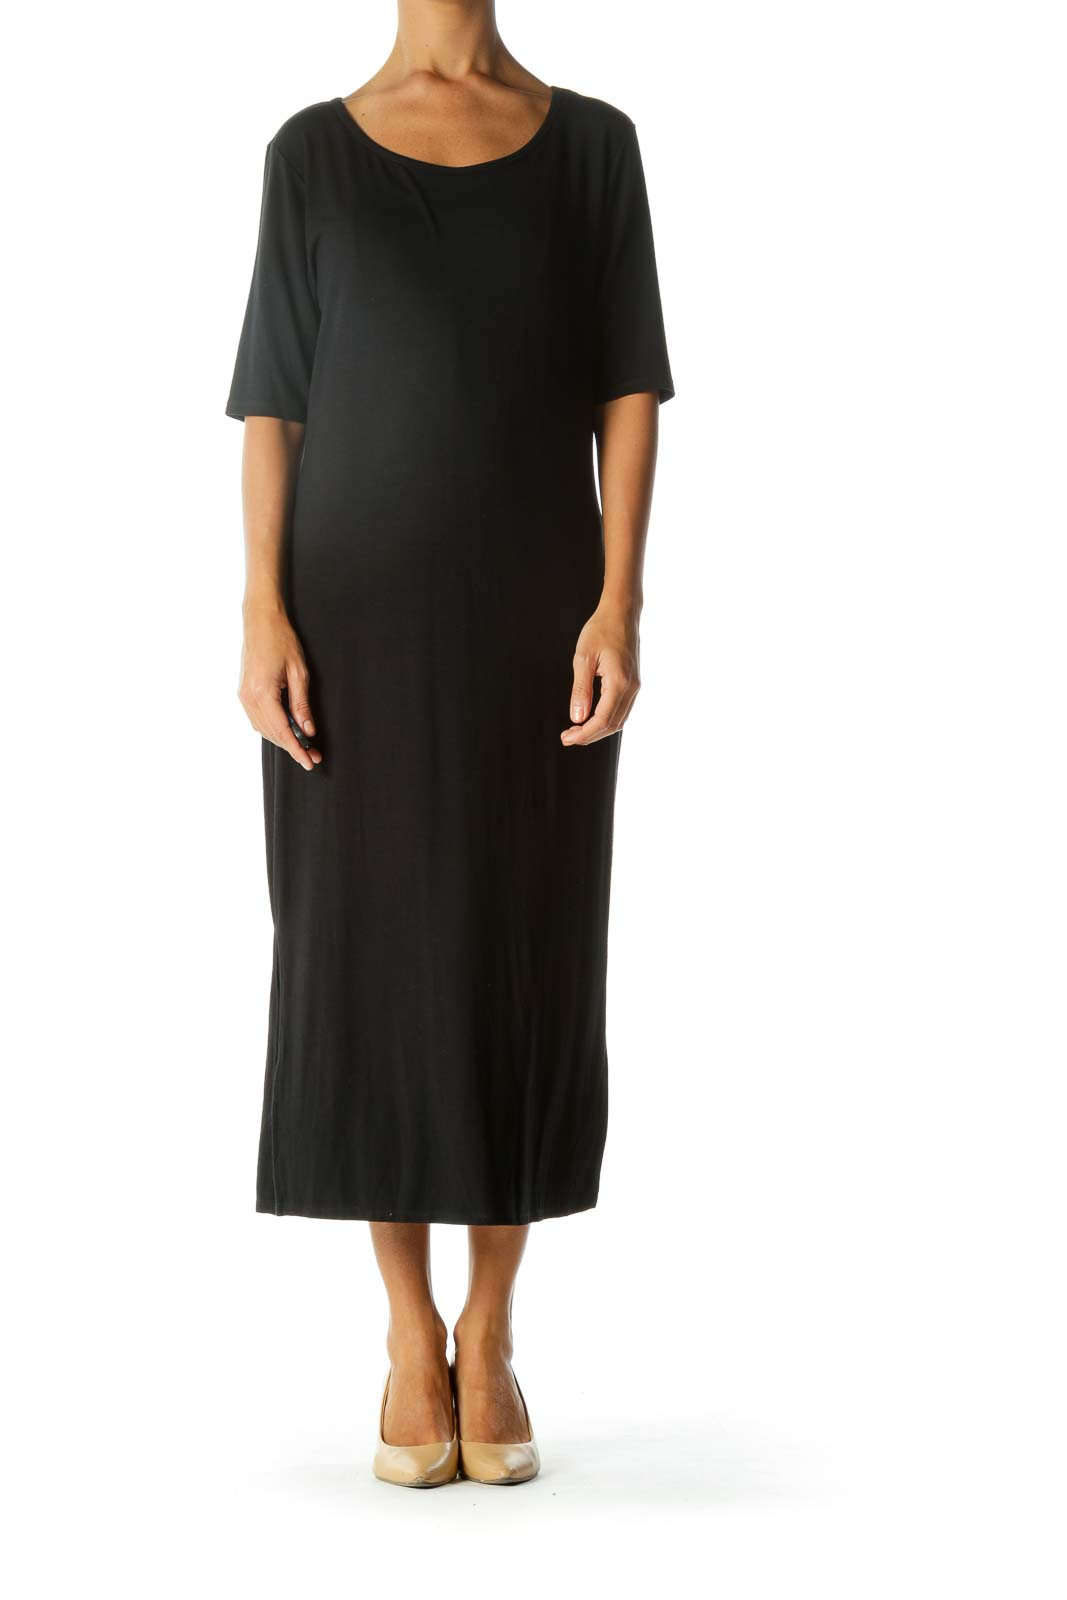 Black Round Neck 3/4 Sleeve Jersey Knit Stretch Midi Dress